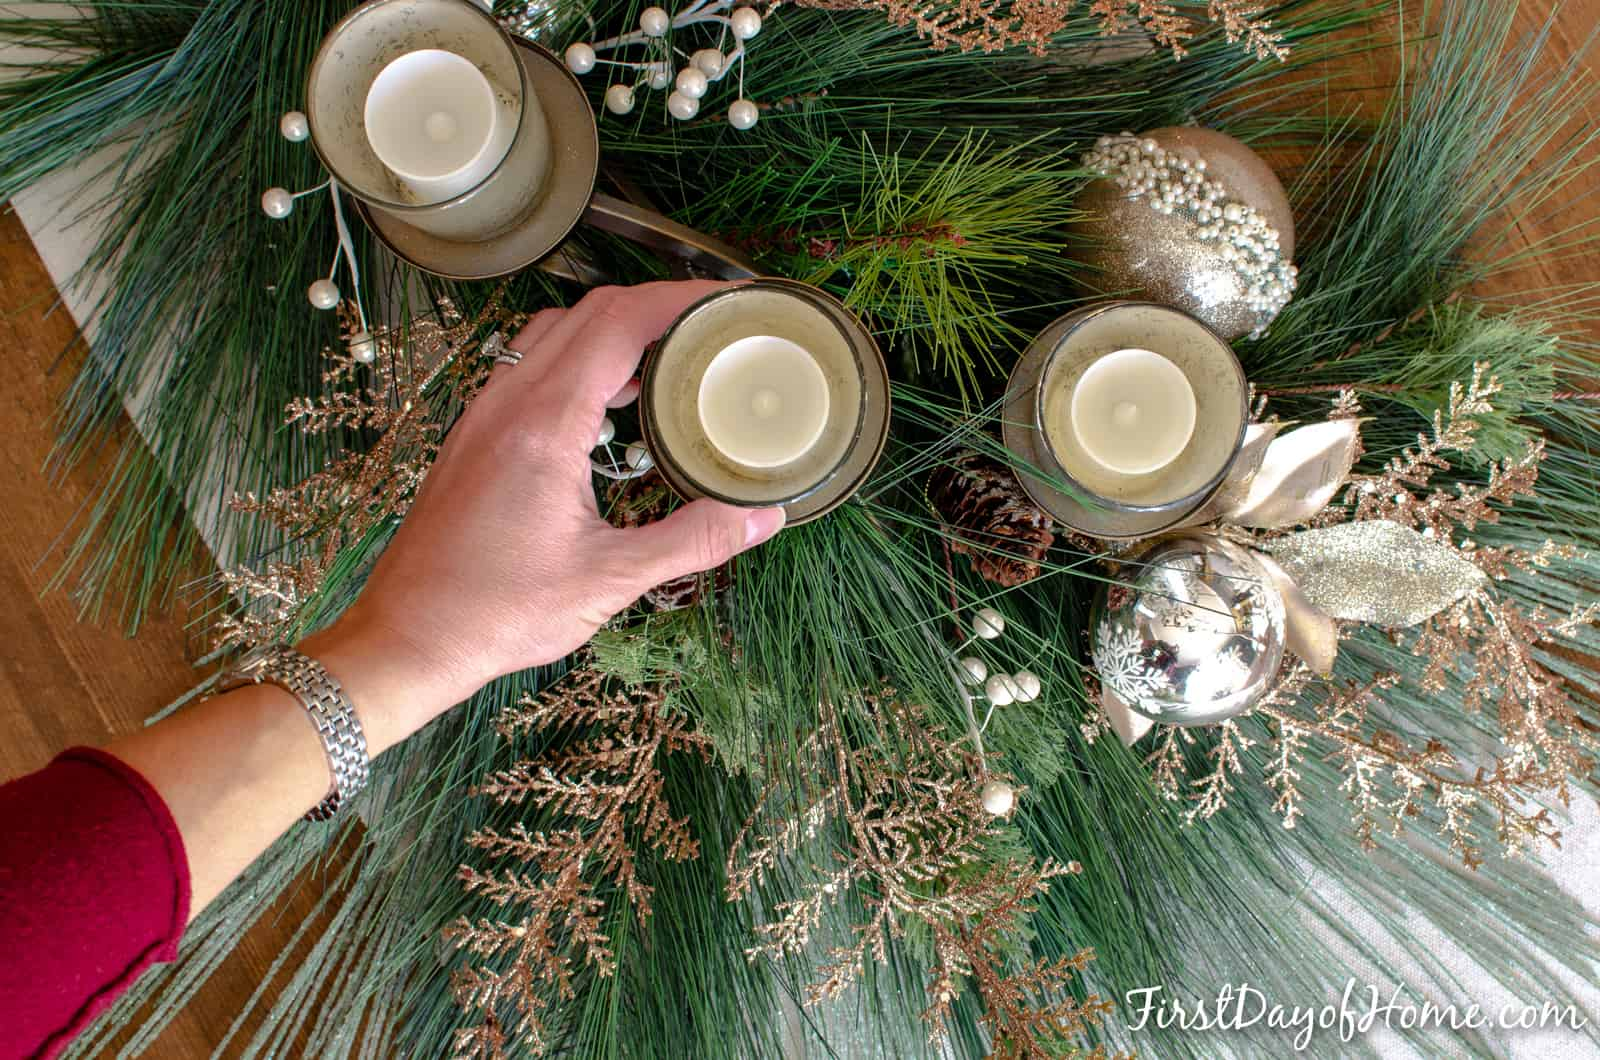 Easy DIY Christmas centerpiece with mercury glass votive candle holders and flameless votive candles. Mix of silver and gold ornaments and accents.